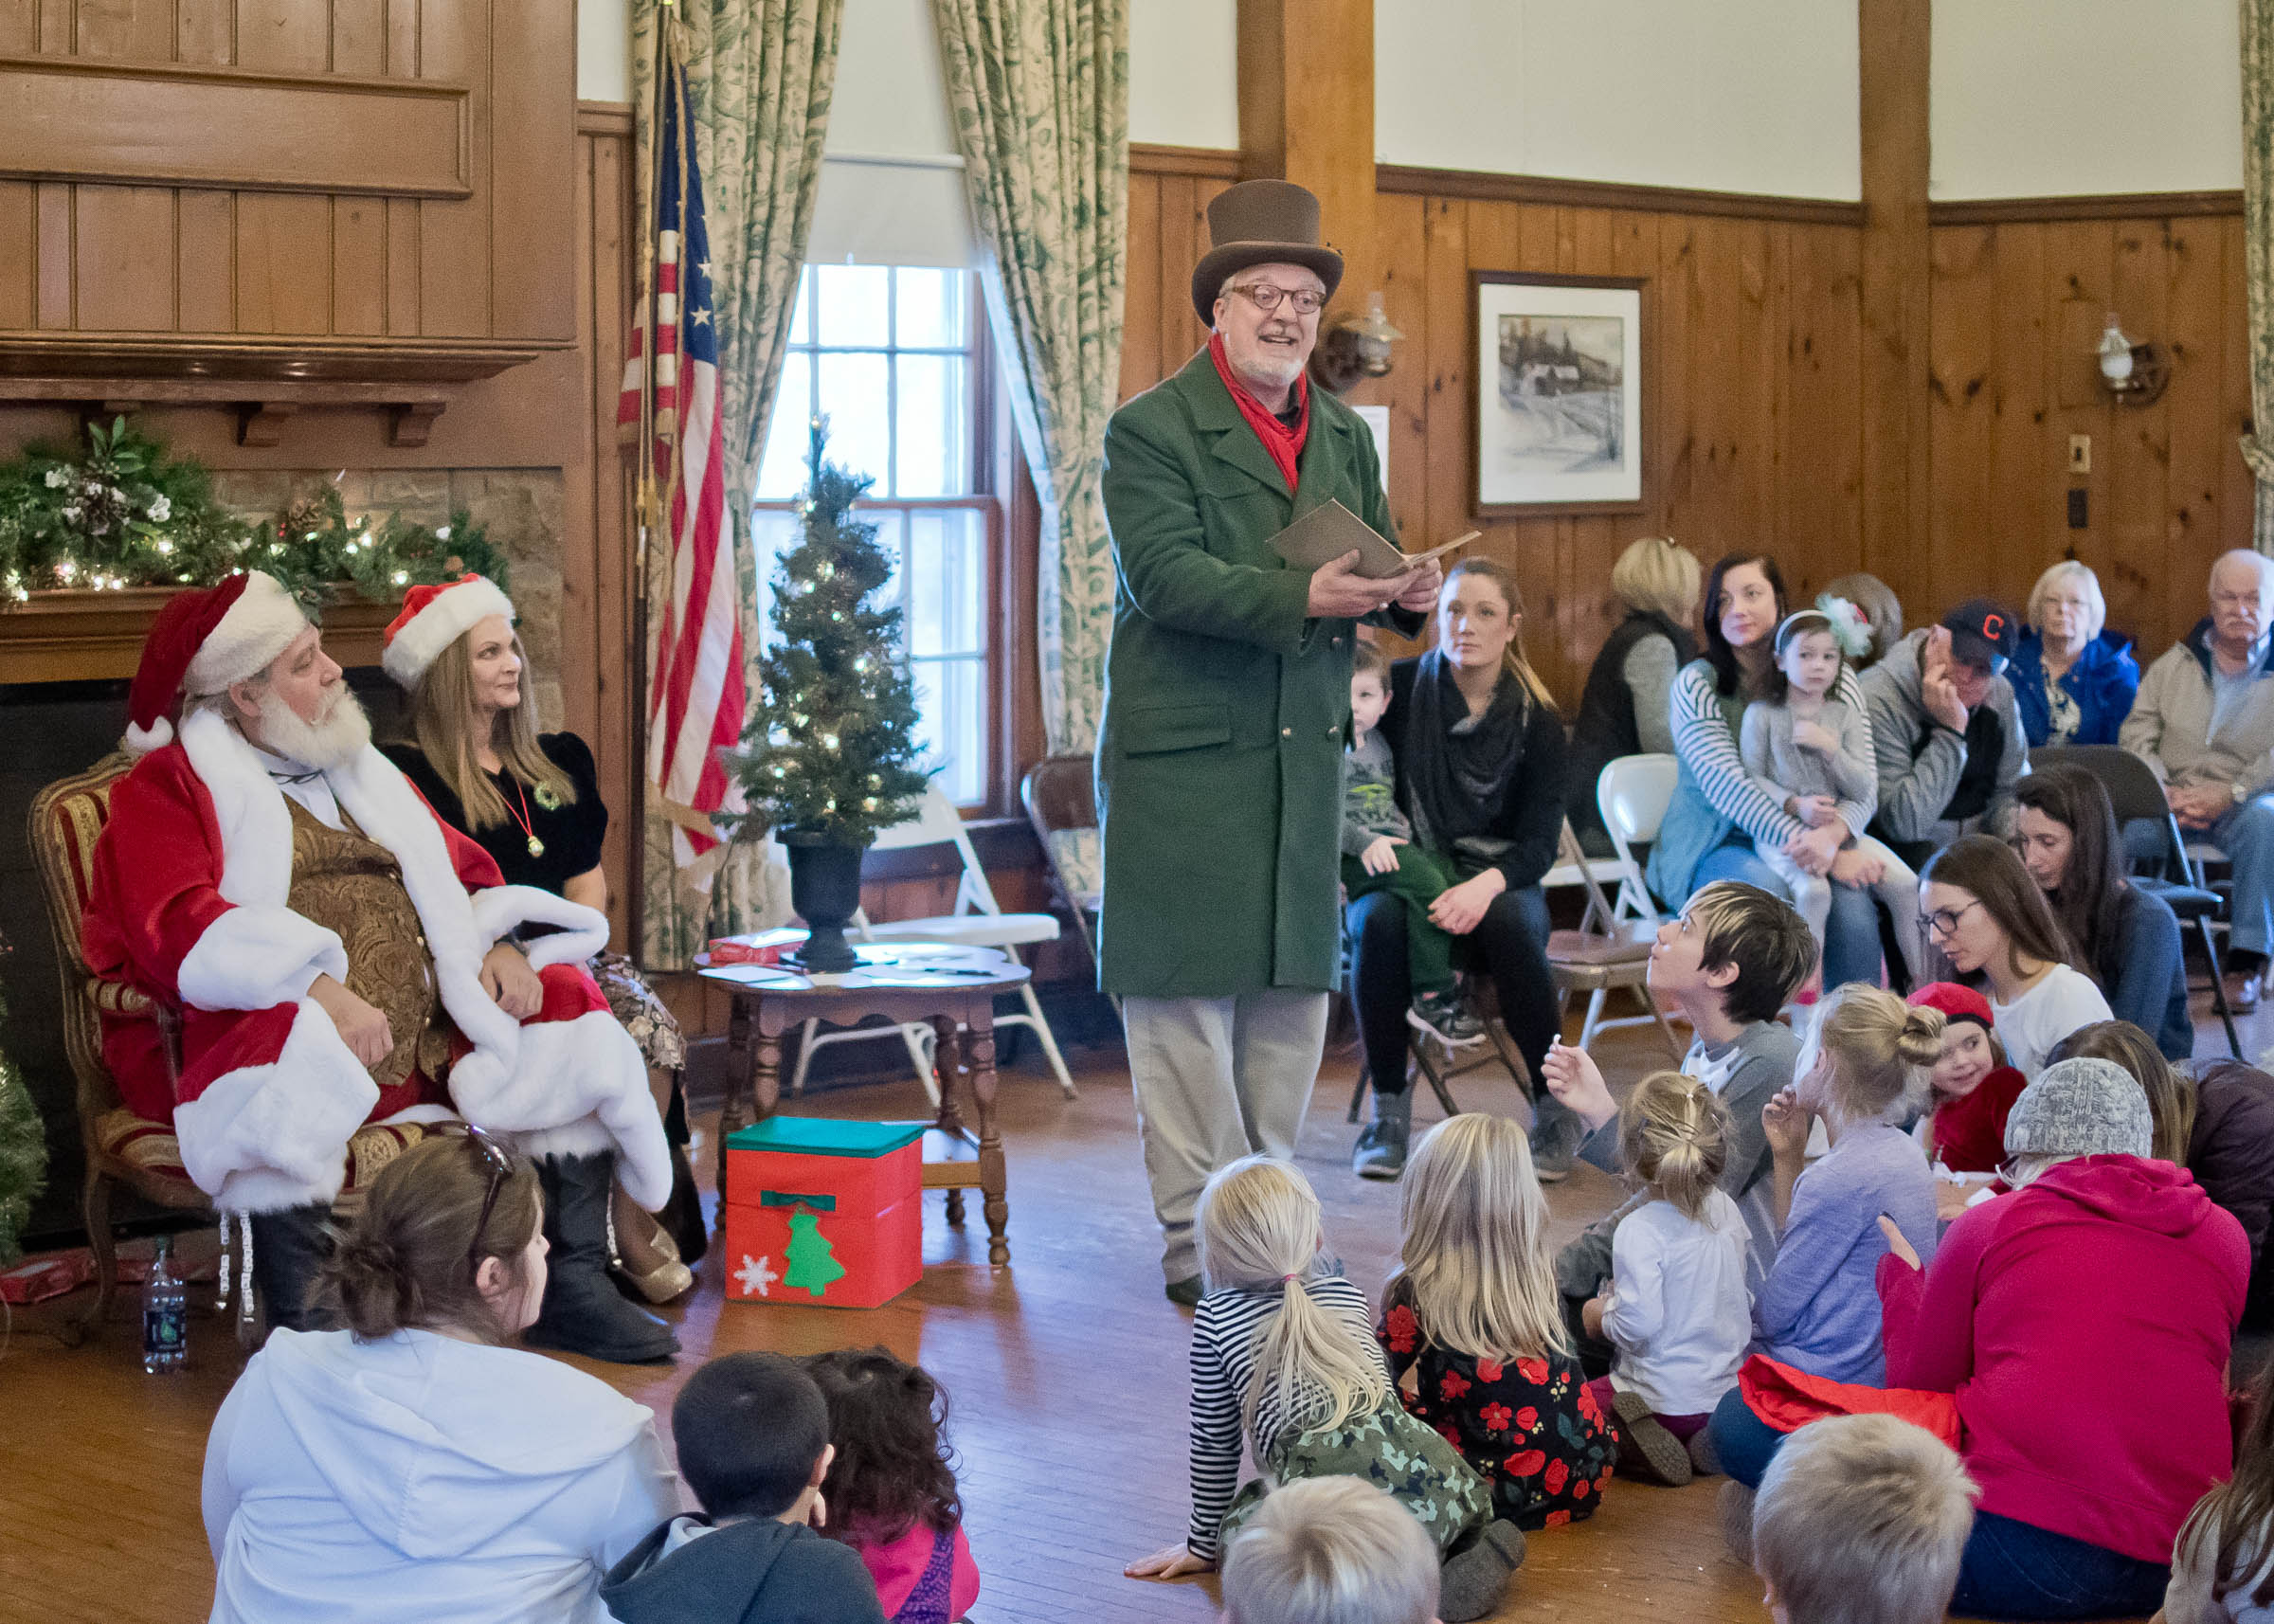 Bay Village Celebrates An Olde Fashioned Christmas The Villager